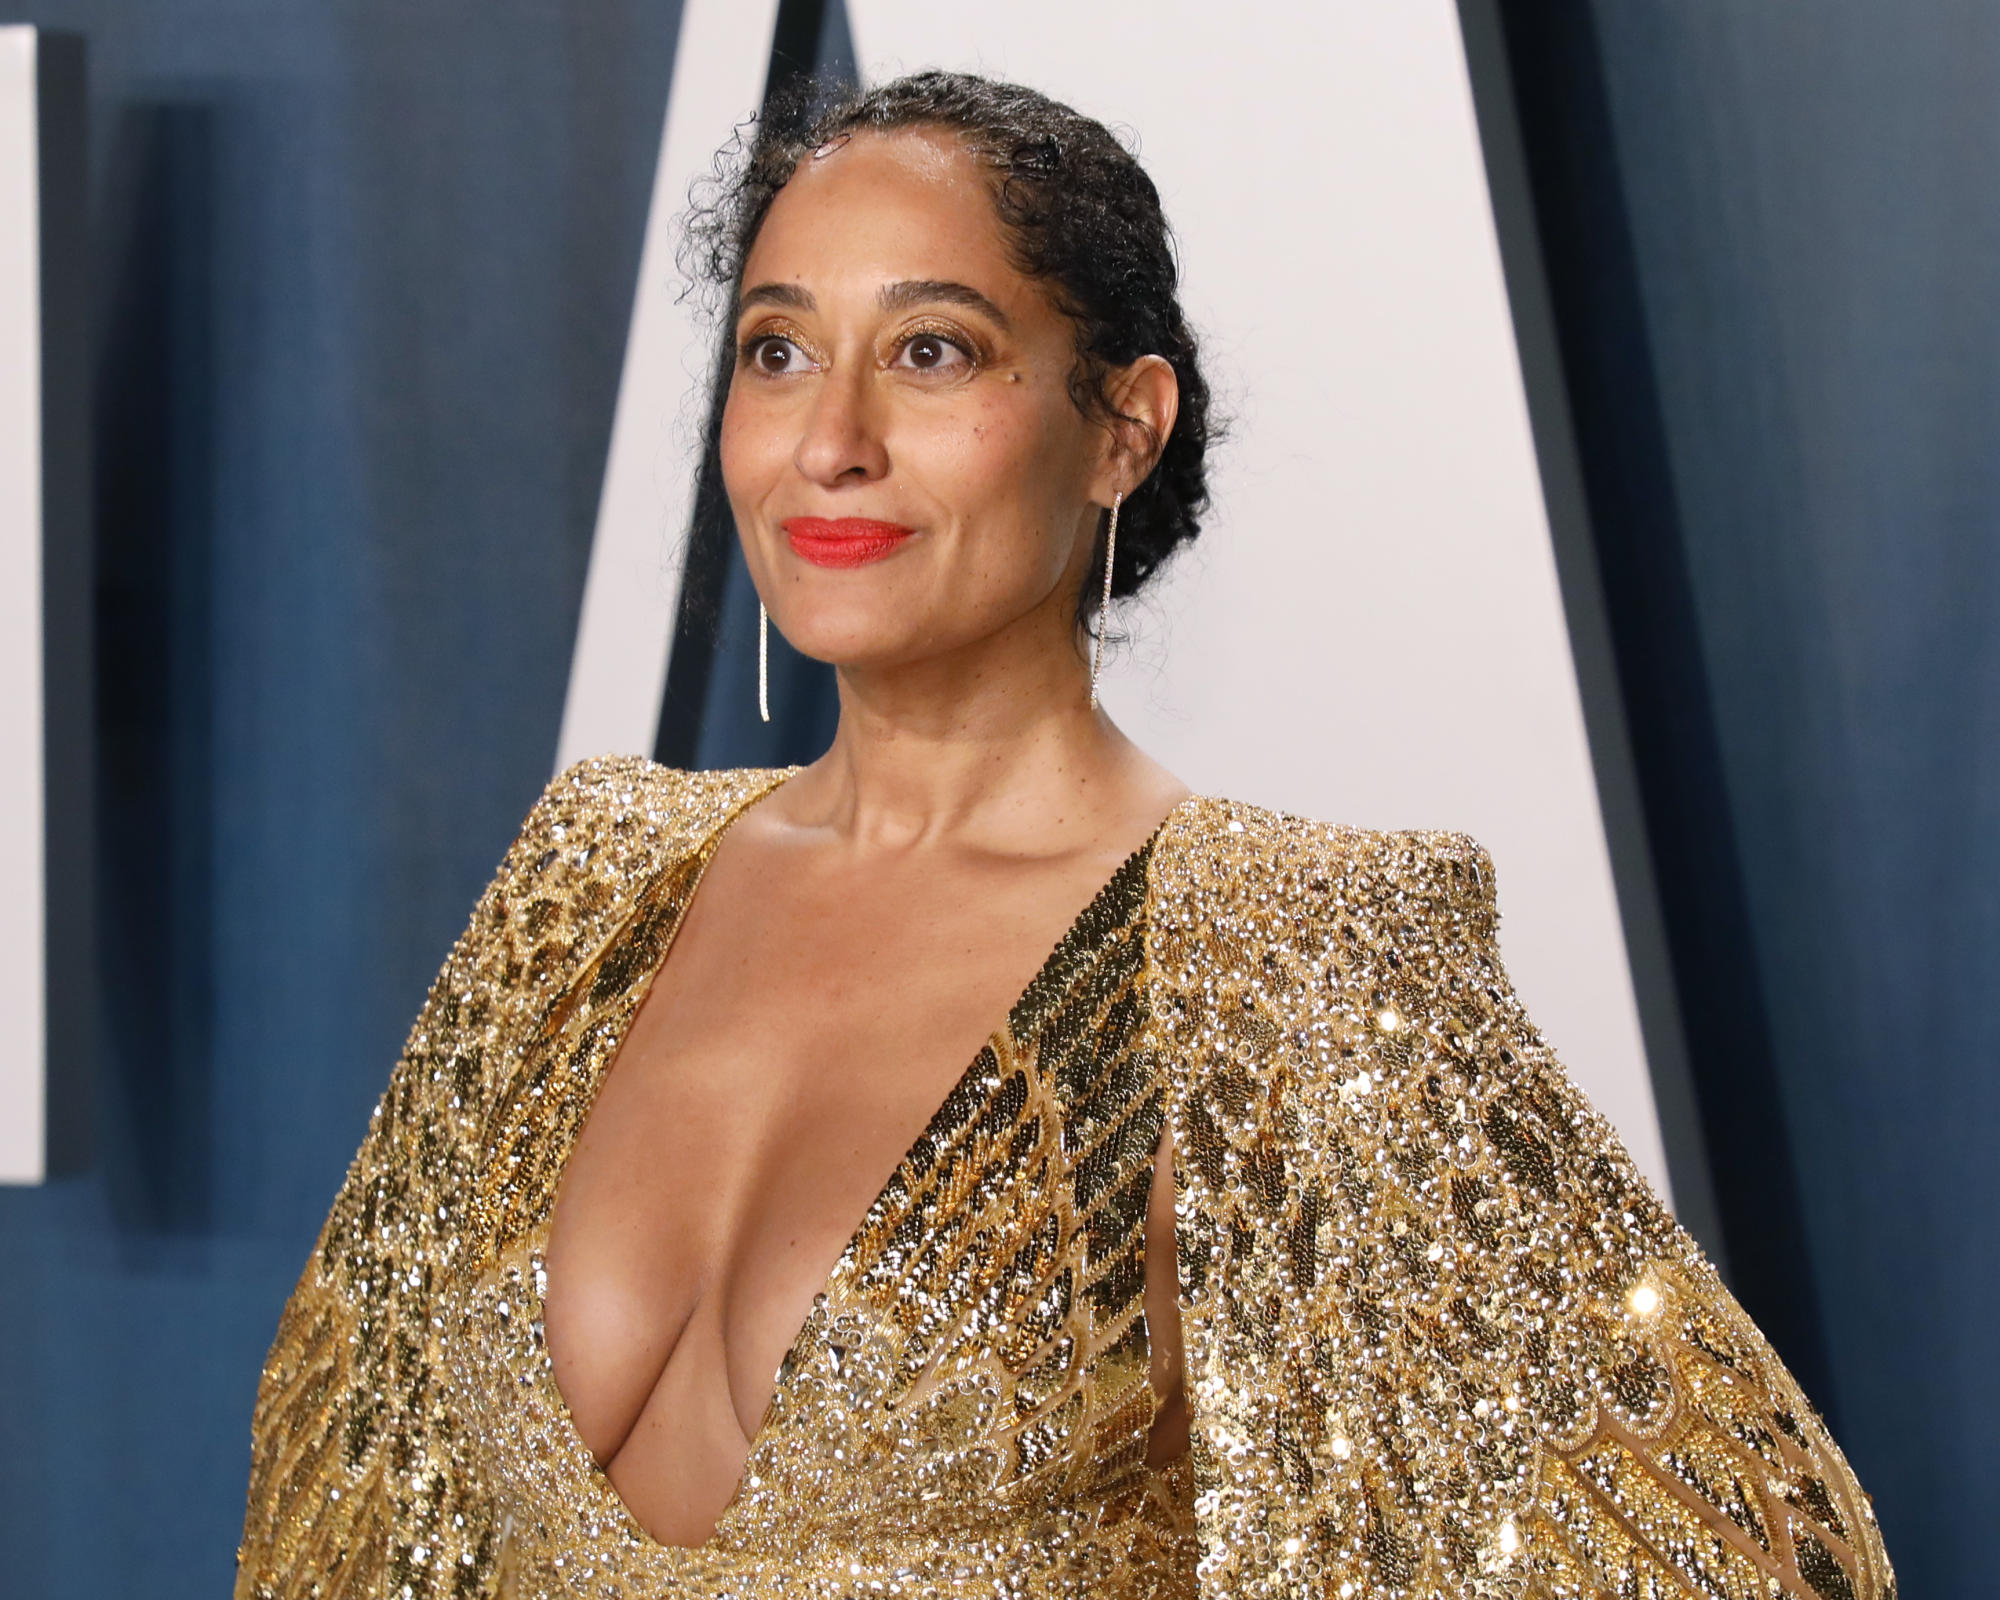 Tracee Ellis Ross practices compassion and gratitude despite pandemic weight gain